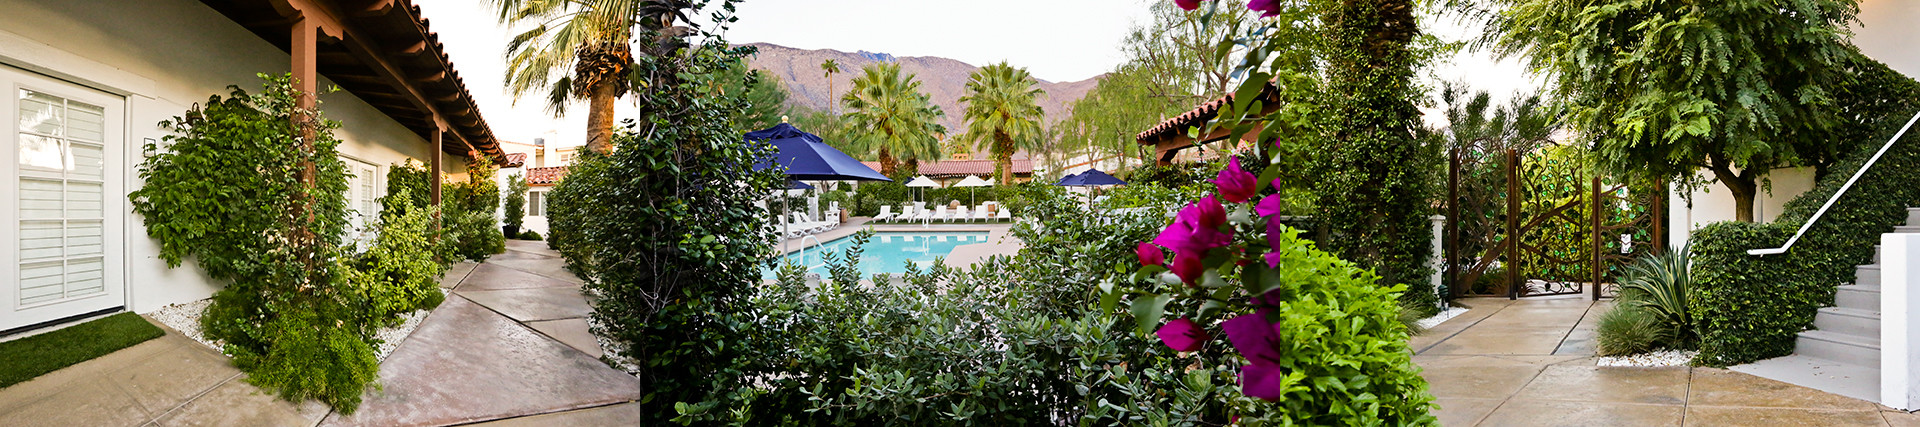 Alcazar Hotel Palm Springs 4